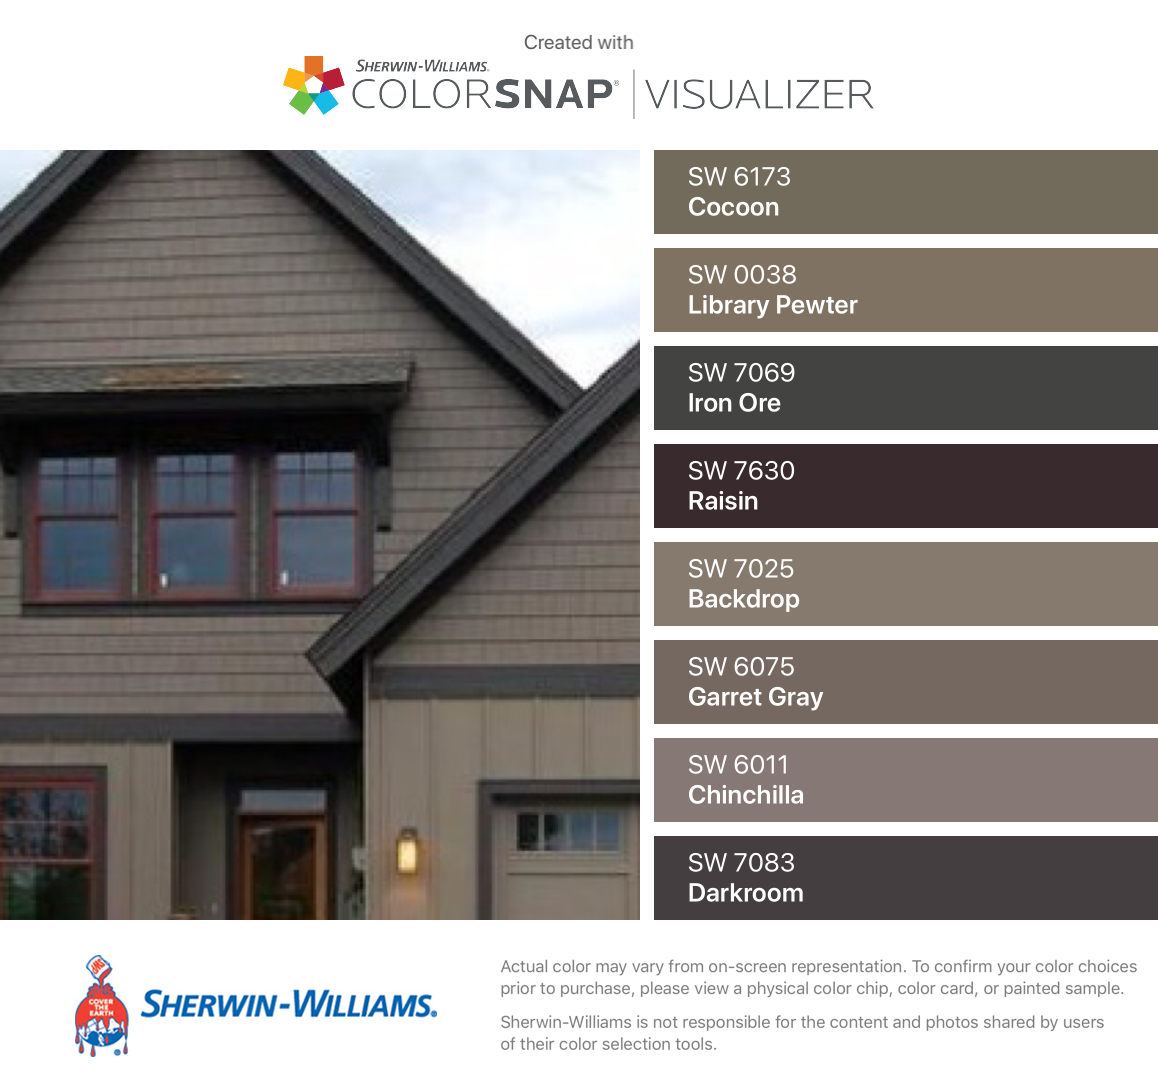 I Found These Colors With Colorsnap Visualizer For Iphone By Sher House Paint Exterior Exterior Paint Colors For House Exterior House Paint Color Combinations